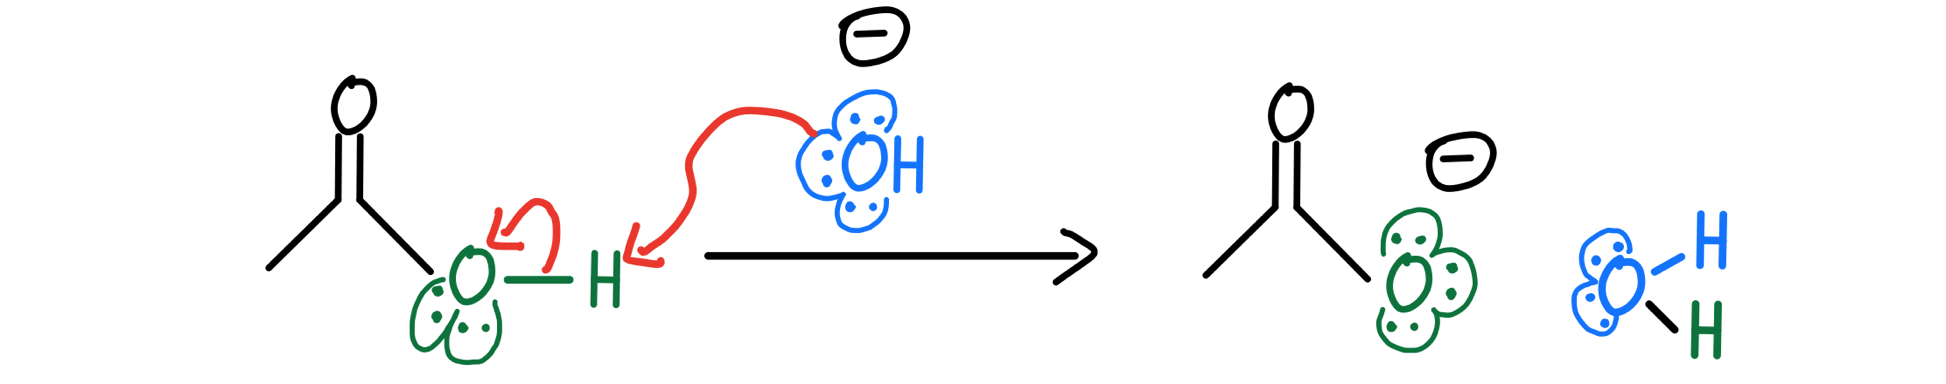 Bronsted acid-base reaction